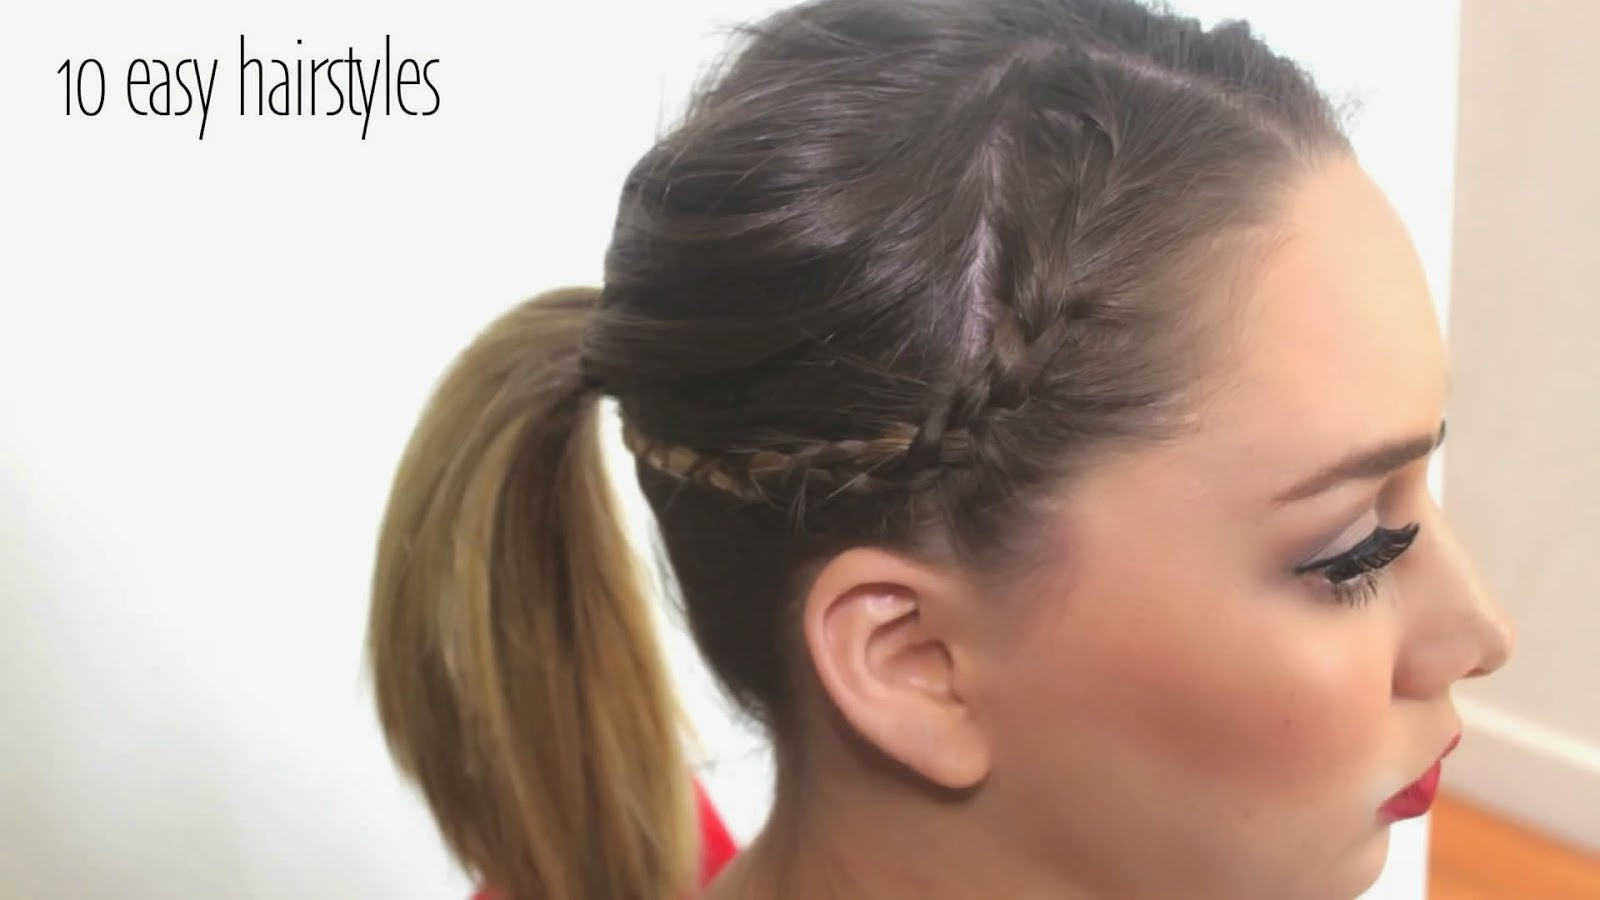 Best ideas about 10 Easy Hairstyles . Save or Pin StyleVia Top 10 Easy Hairstyles Can Set in 5 Minutes Now.